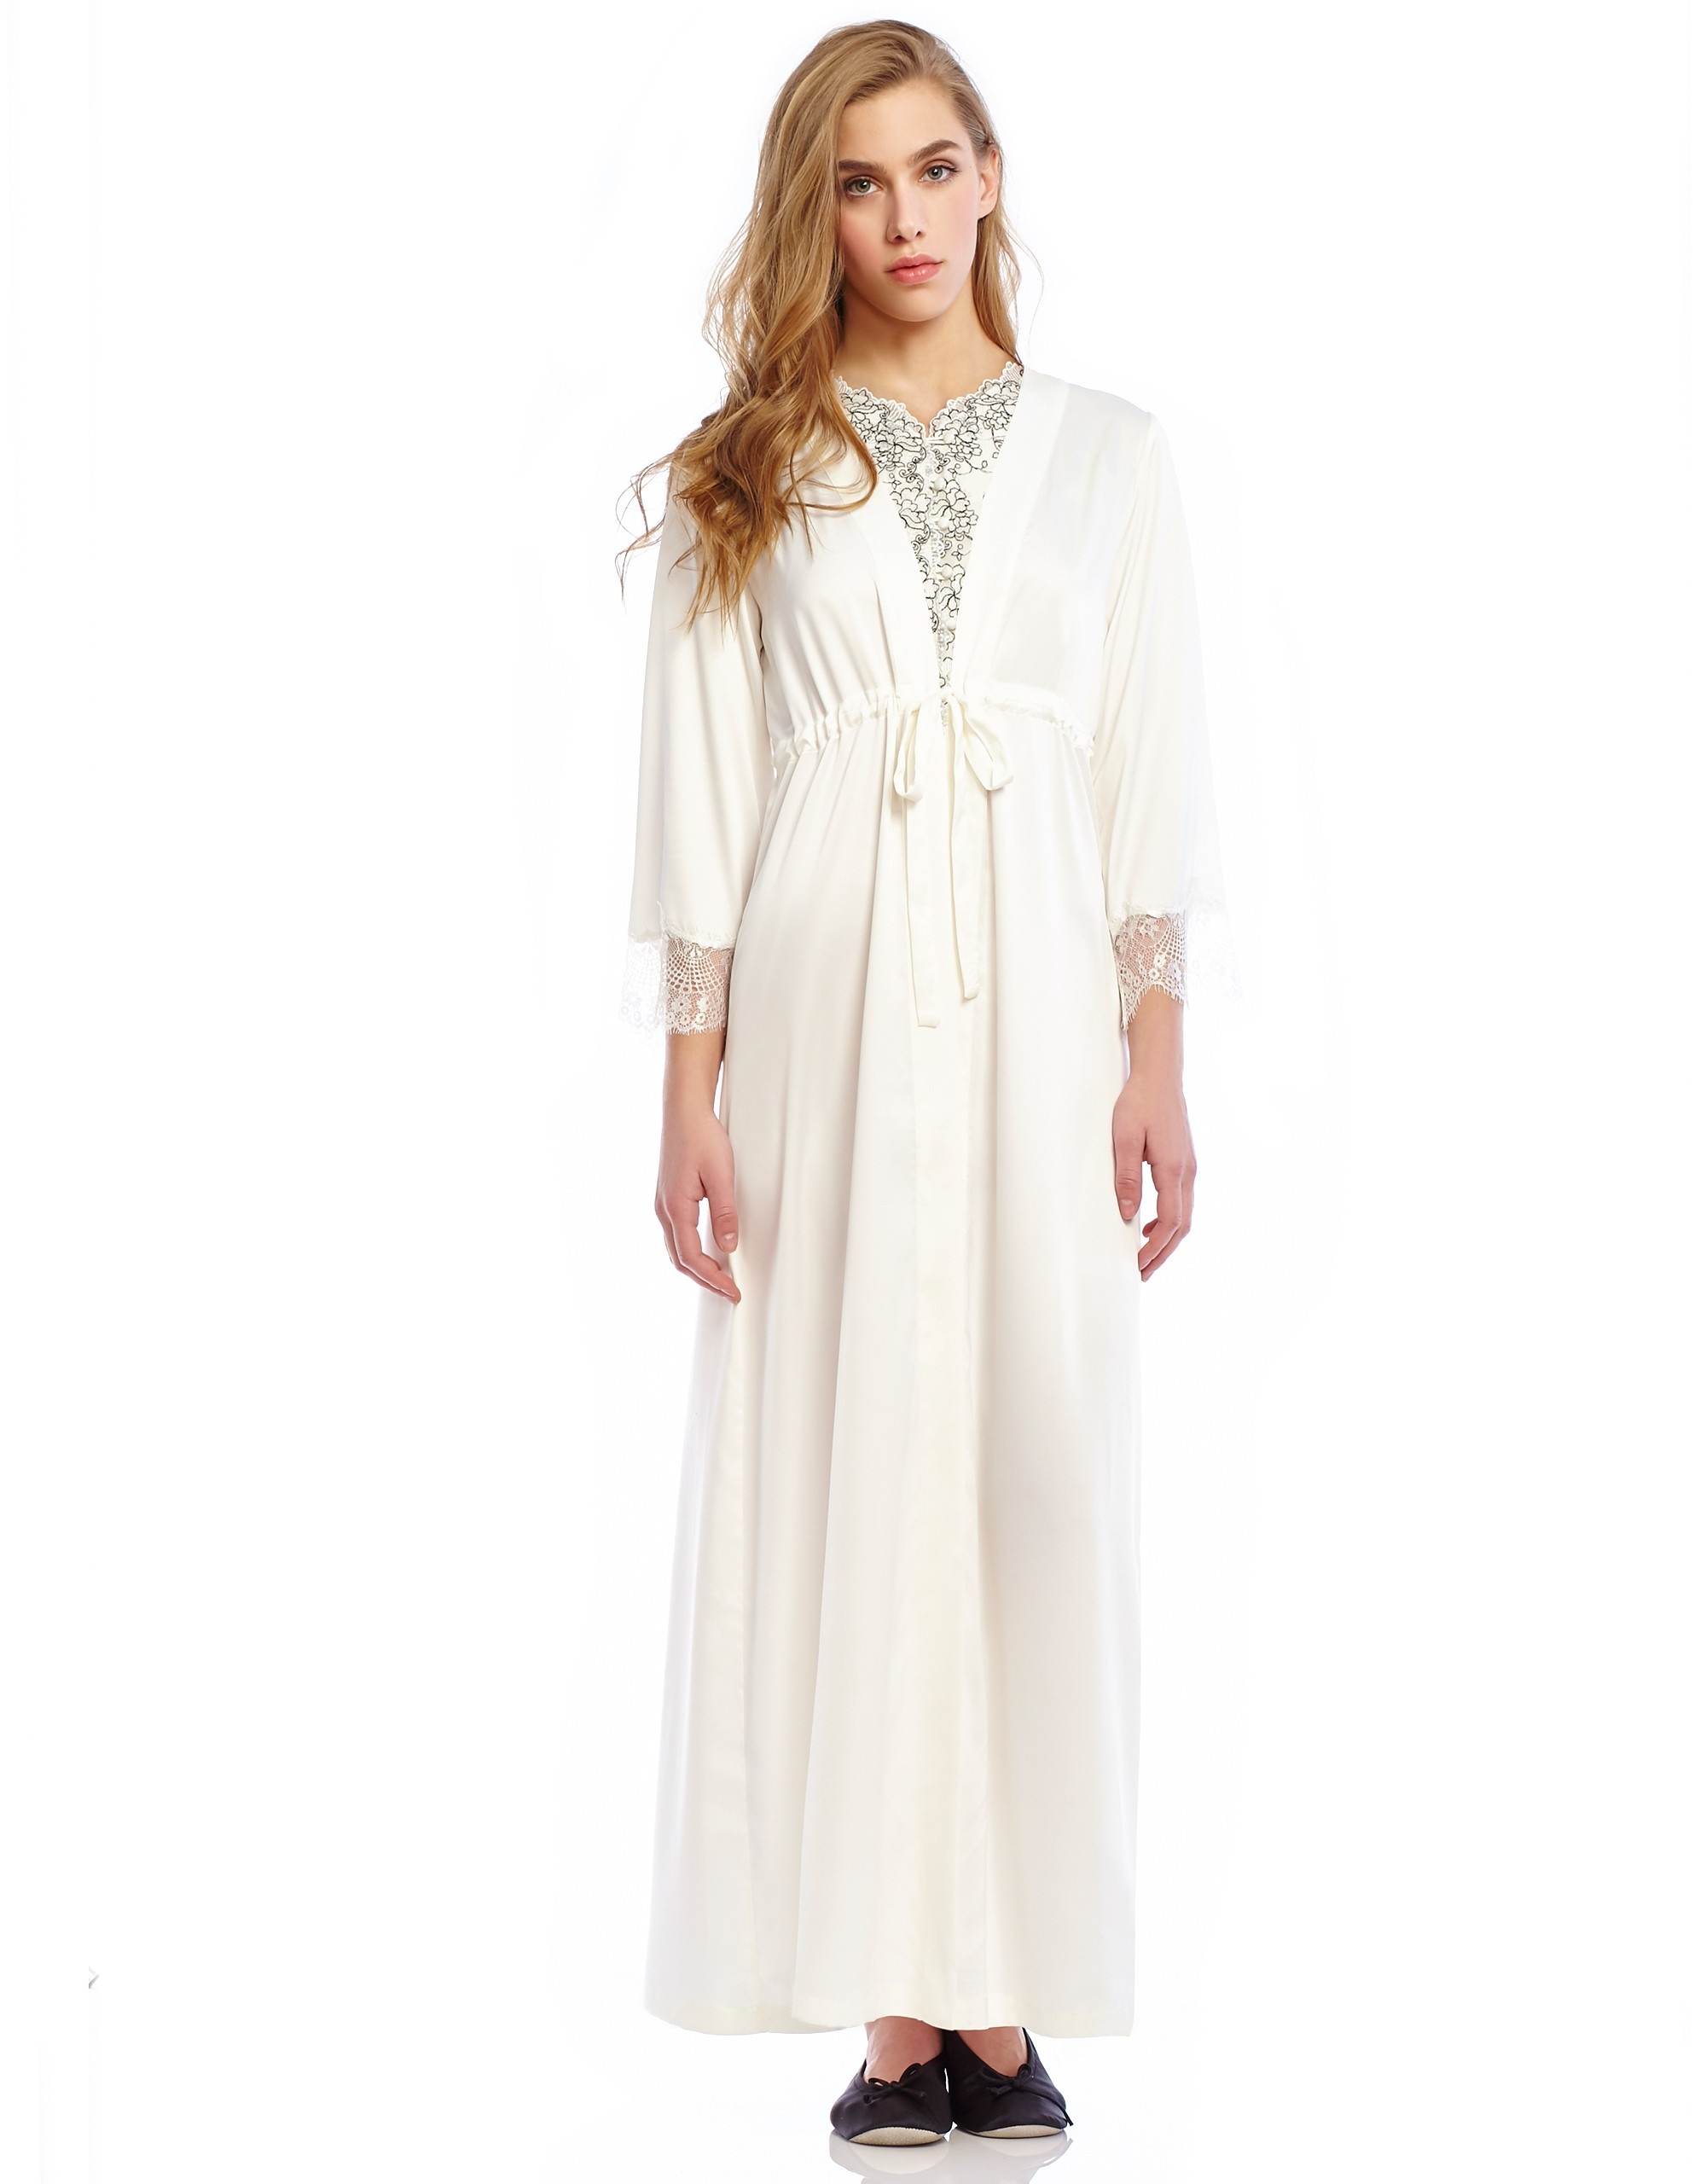 6e533369239 Silky Wrap Morning Robe with Self Tie at The Lingerie Shop New York